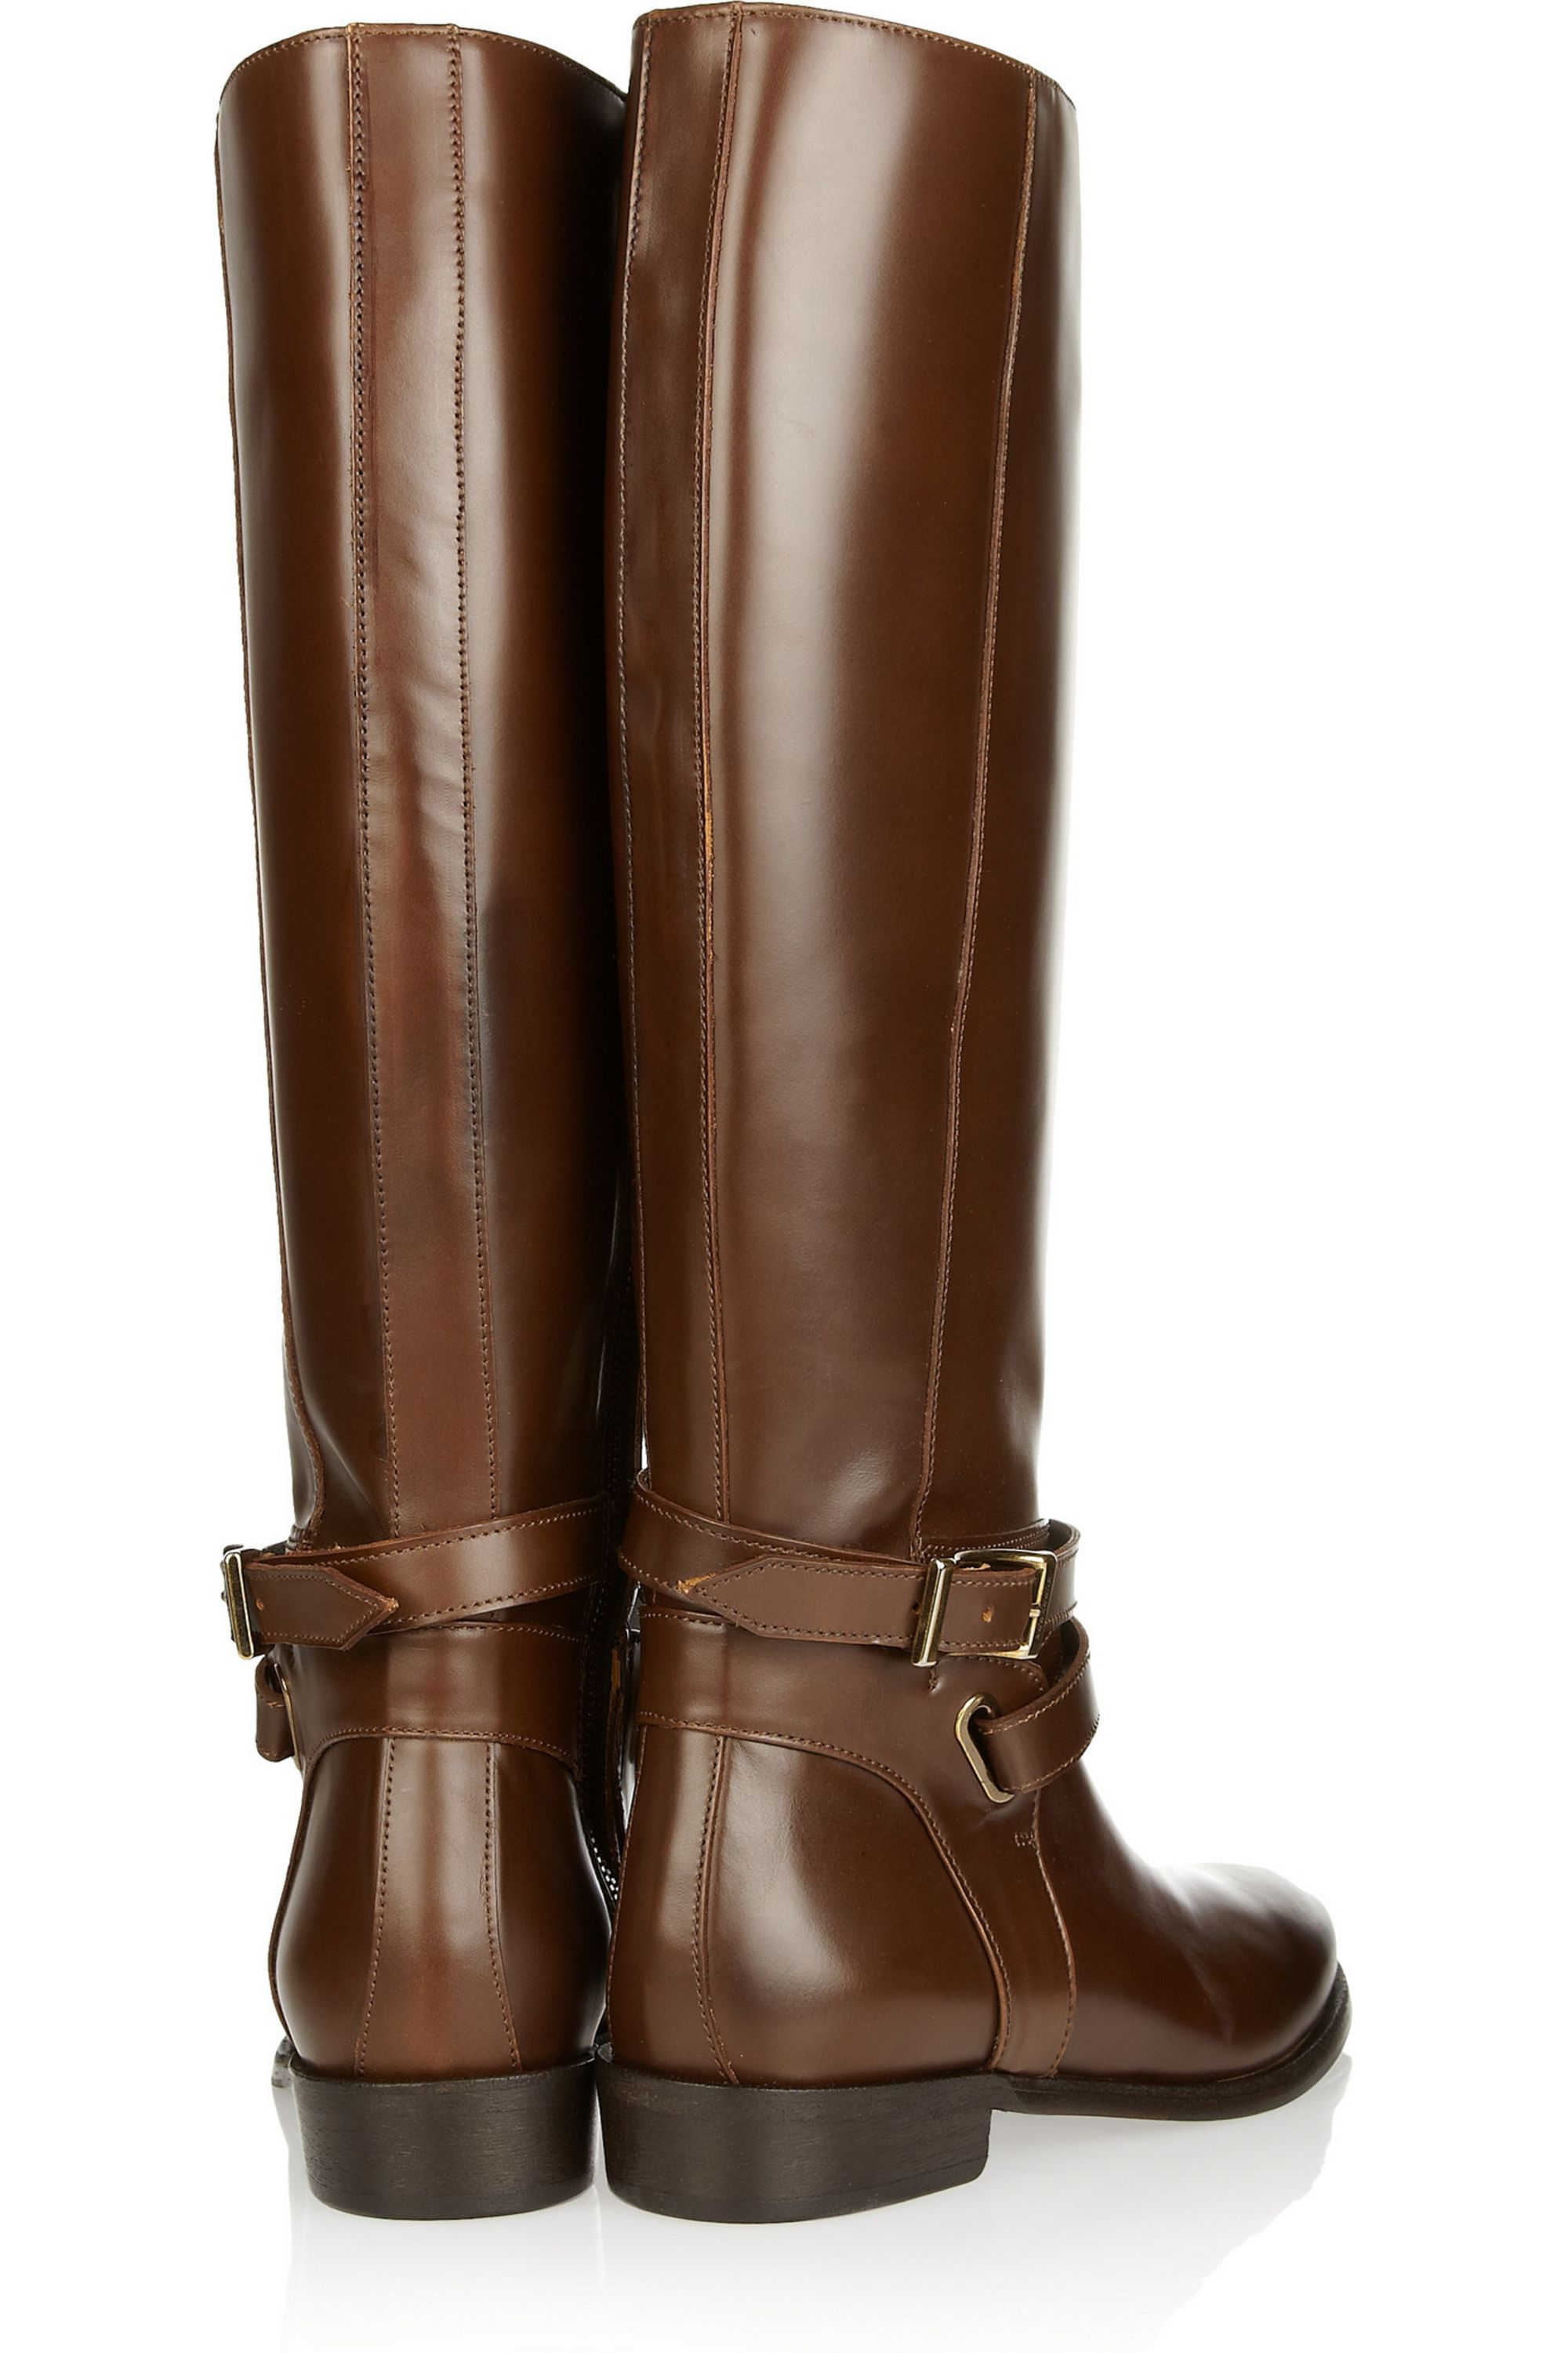 Burberry Leather riding boots